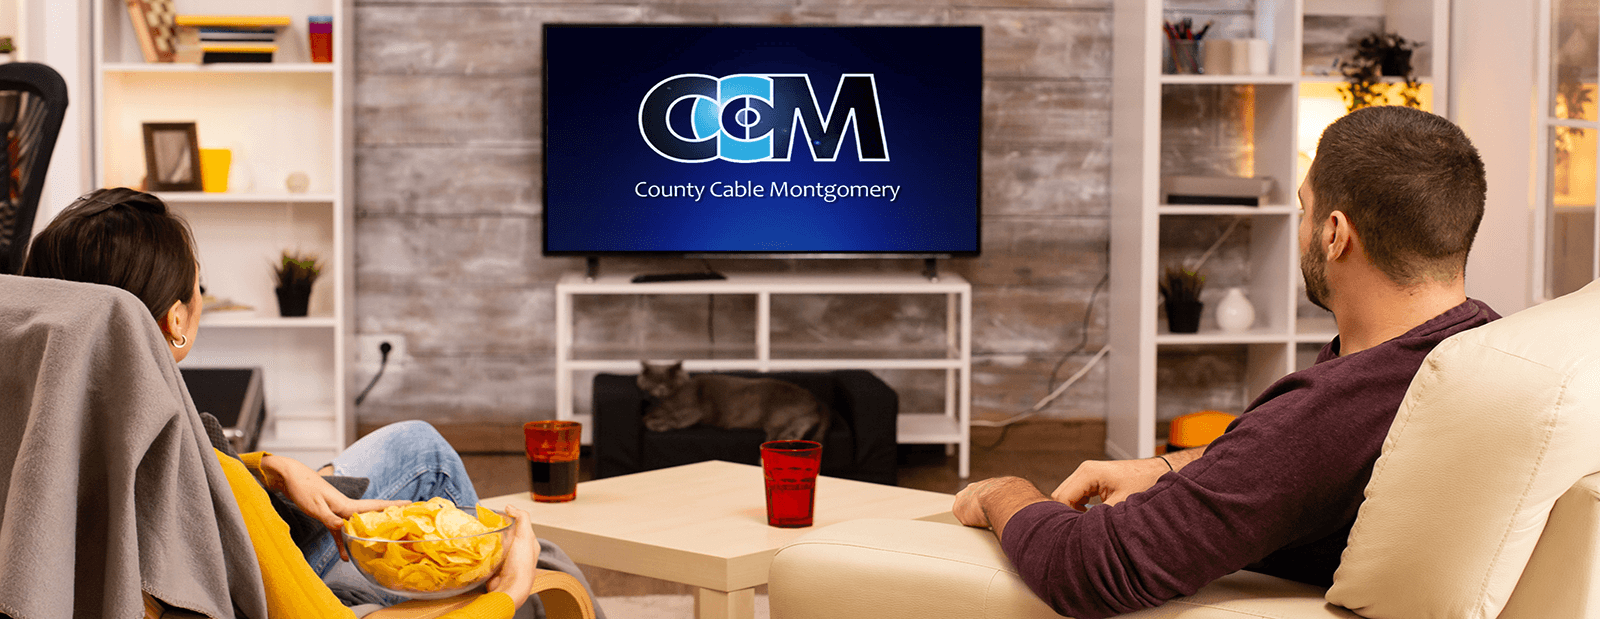 County Cable Montgomery - Image of family watching tv